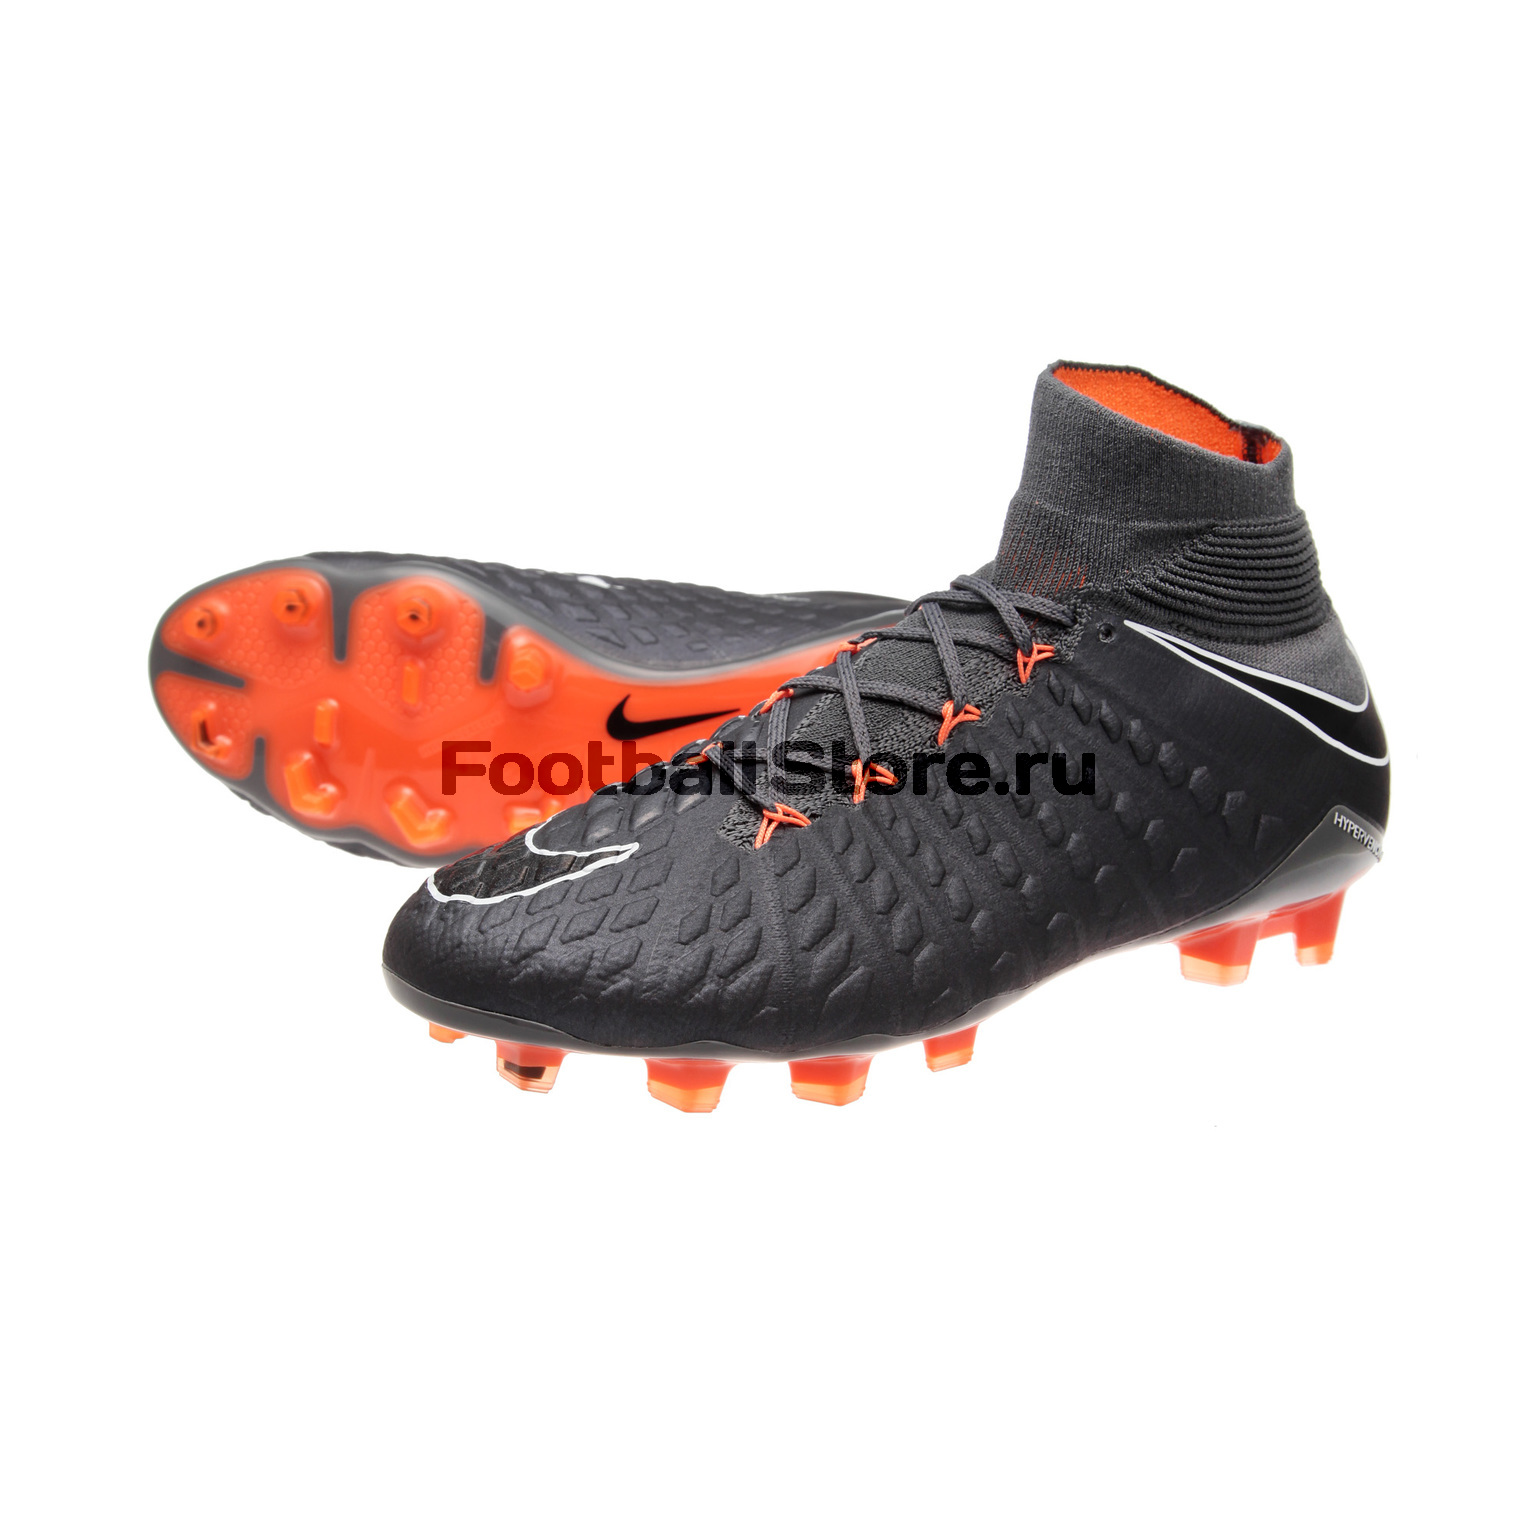 Бутсы Nike Phantom 3 Elite DF FG AH7270-081 детские бутсы nike бутсы nike jr phantom 3 elite df fg ah7292 081